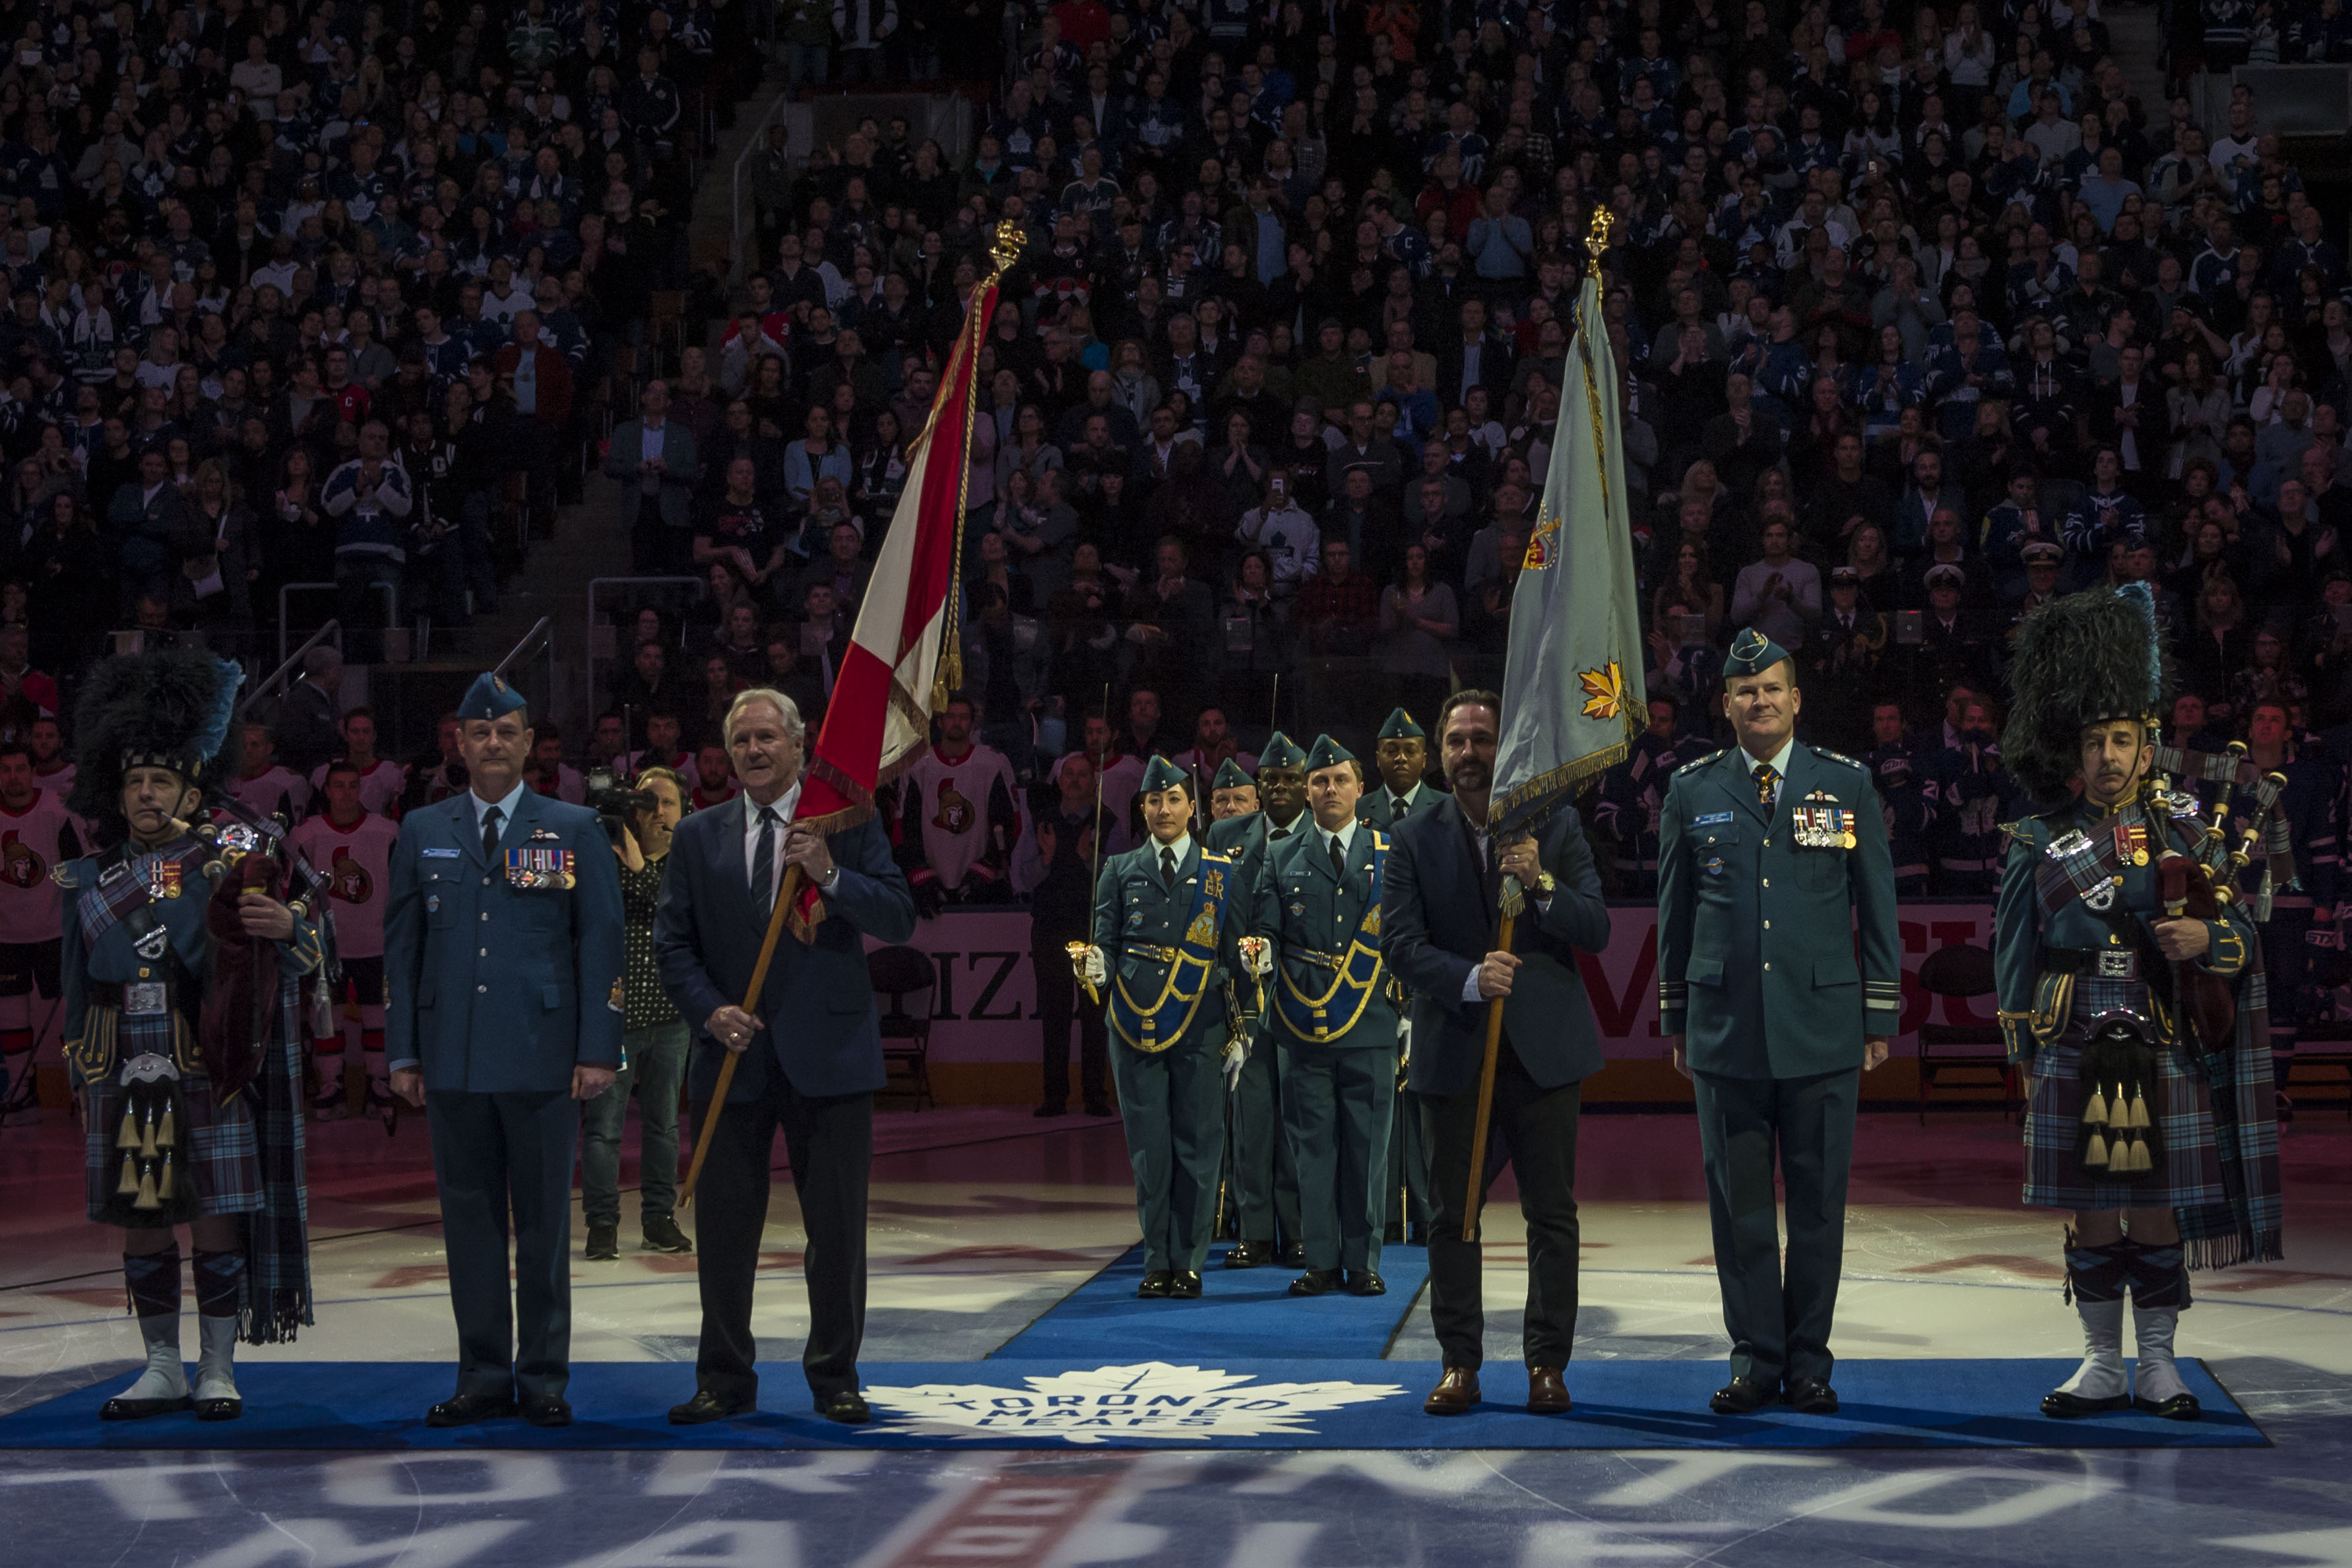 RCAF Colour Retirement at the Air Canada Centre, Toronto